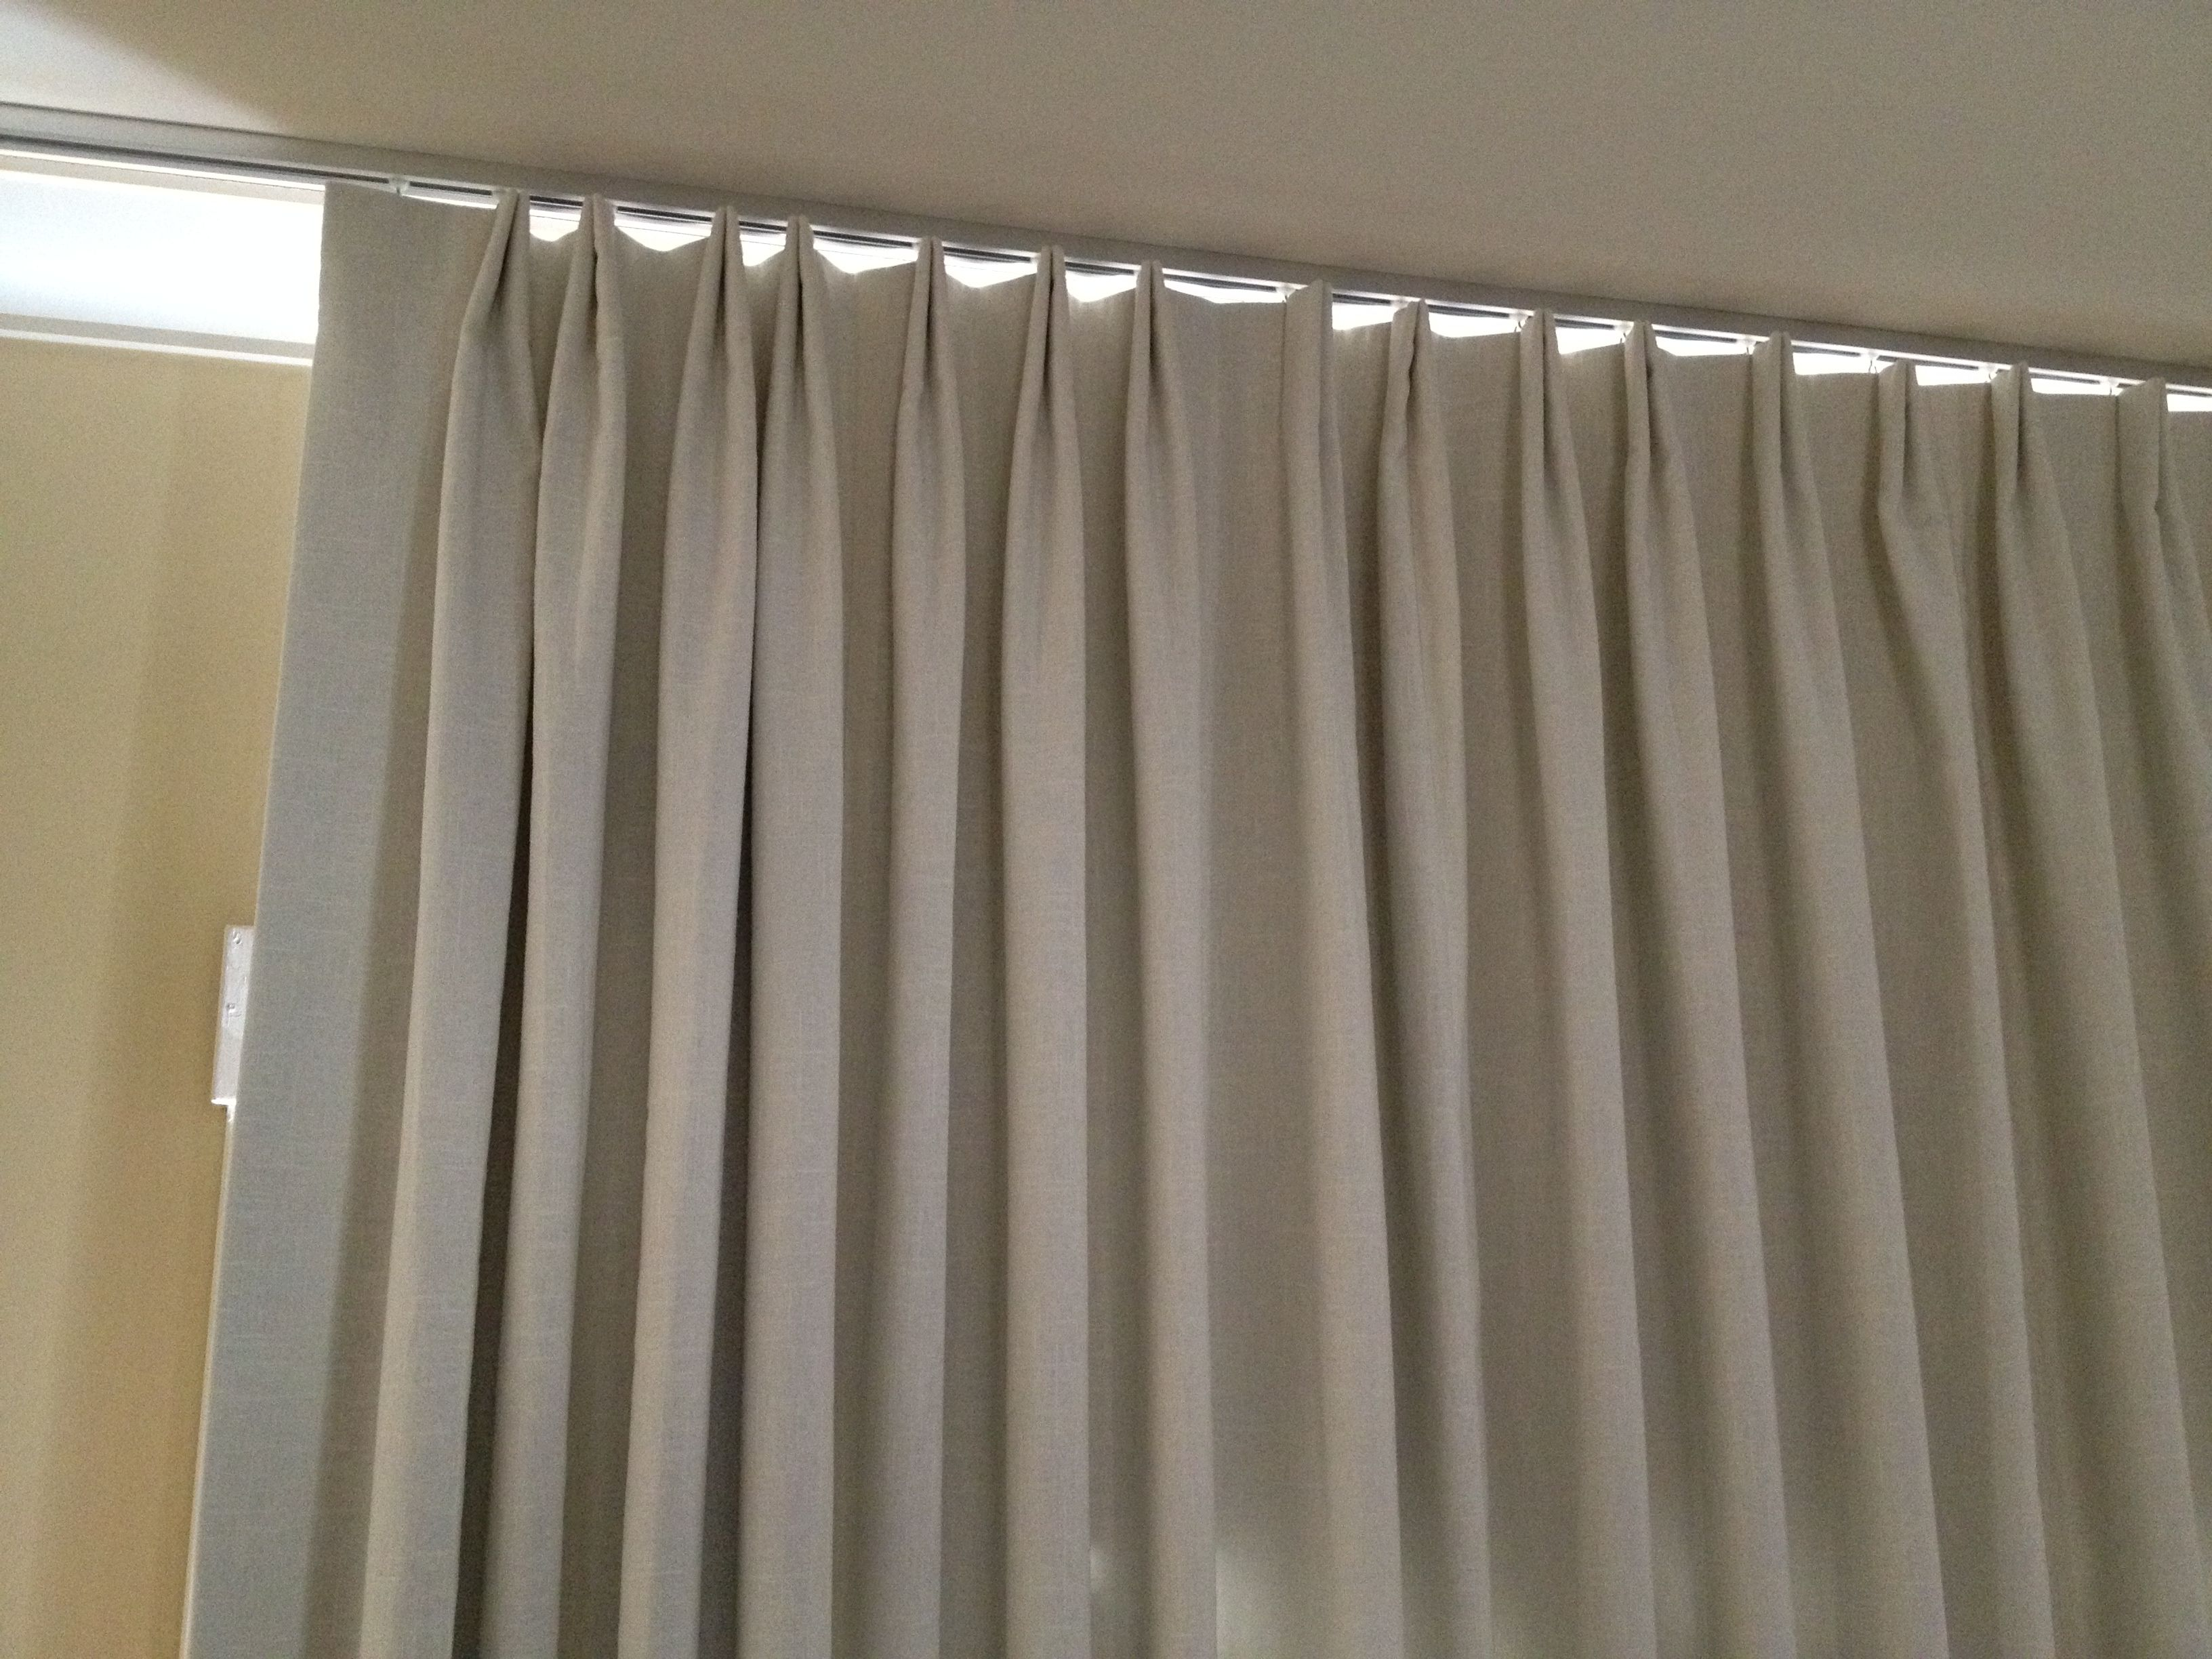 curtain ikea ceiling track decorative mount design ideas curtains modern